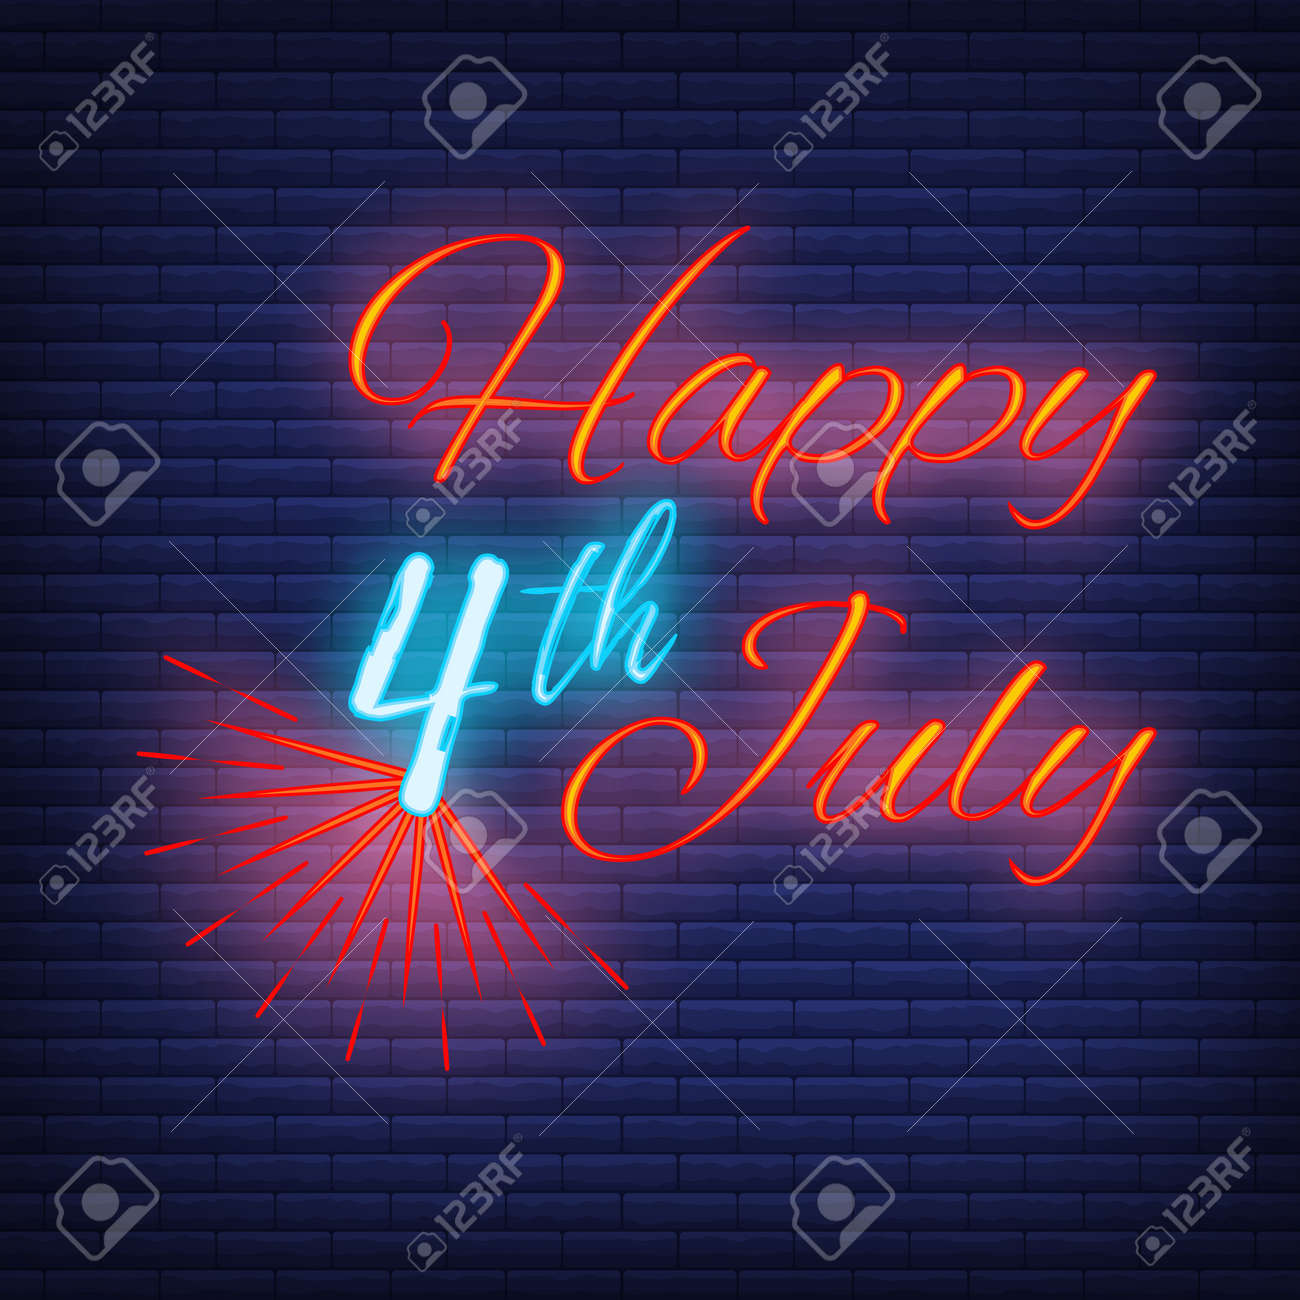 Happy celebration greeting card 4 th July, concept glow neon style font text Independence Day quote phrase vector illustration on black wall background. - 167323956